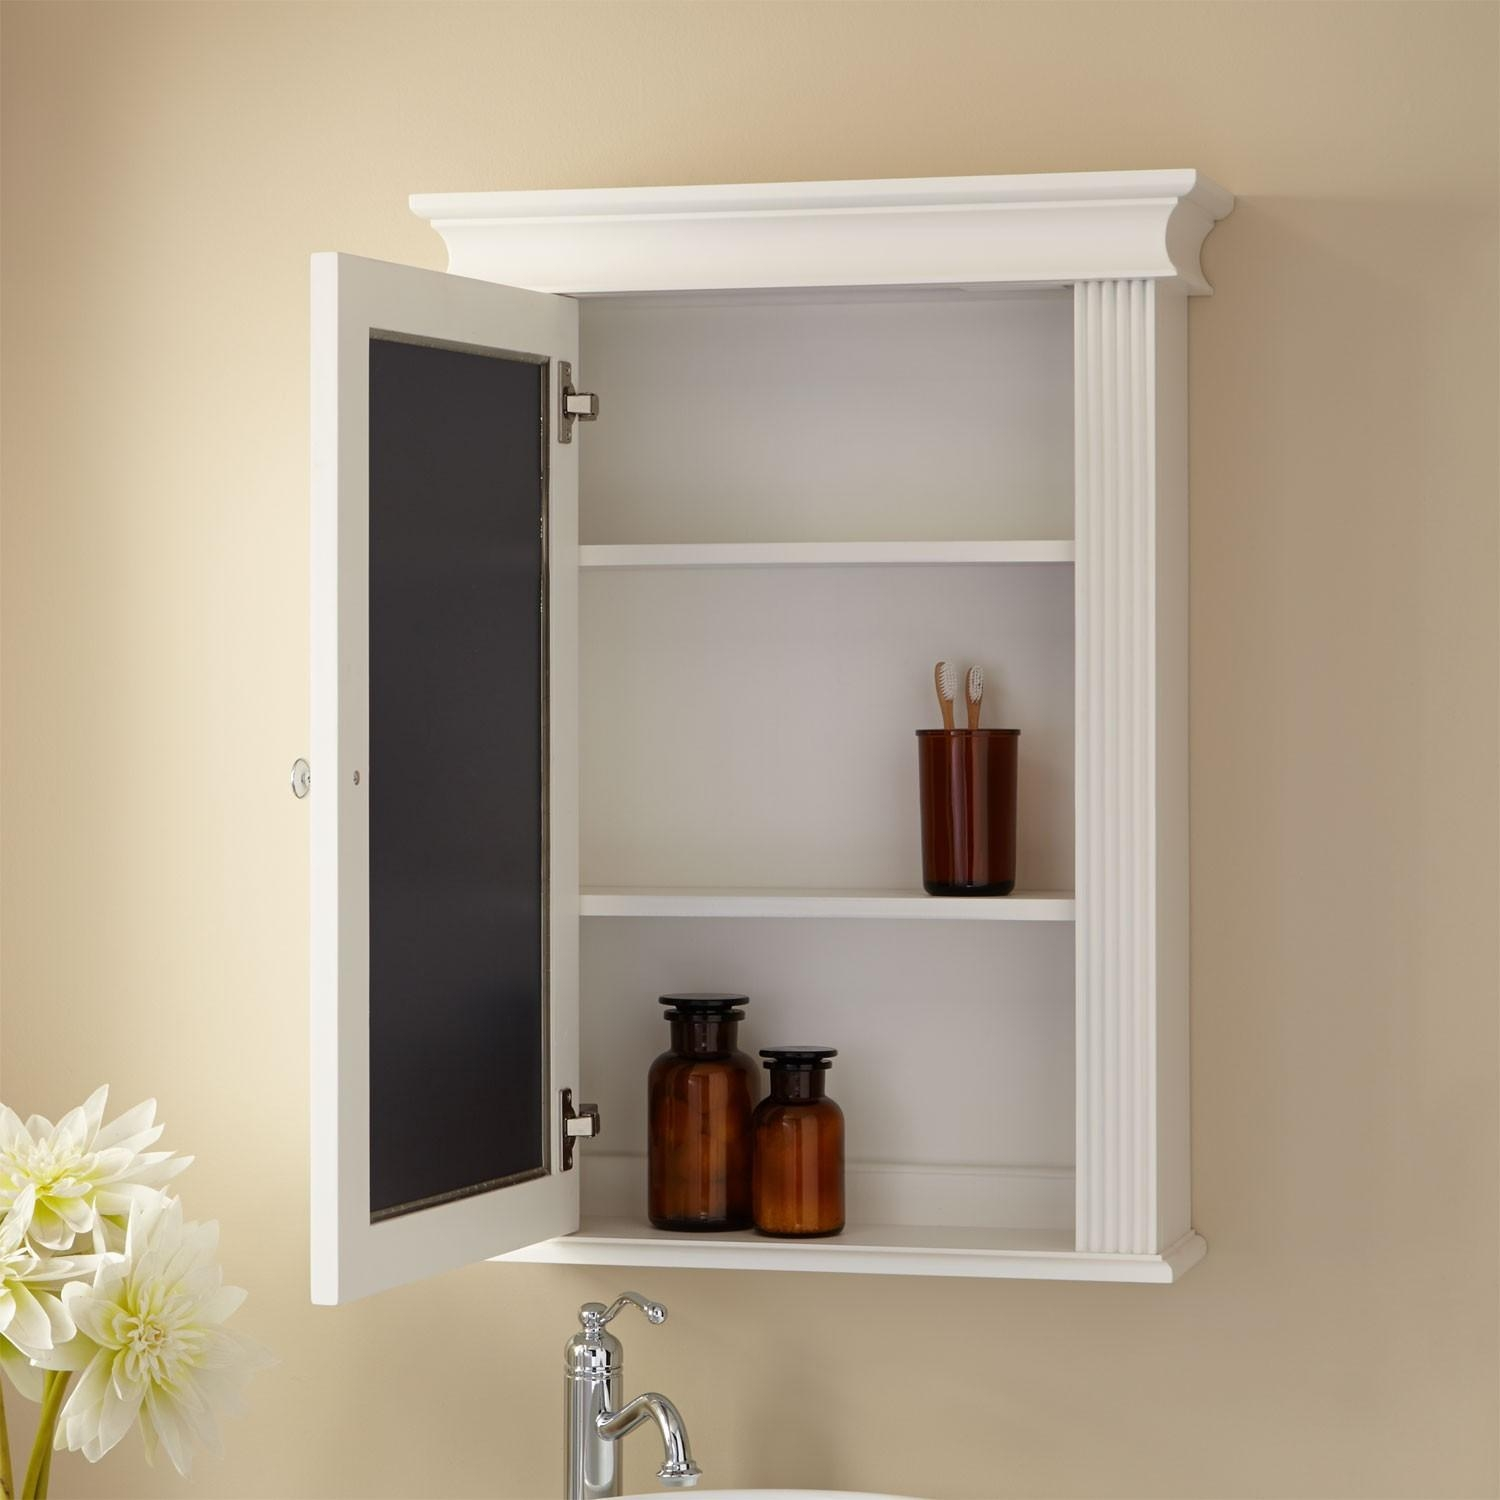 20 photos bathroom vanity mirrors with medicine cabinet - Large medicine cabinet mirror bathroom ...